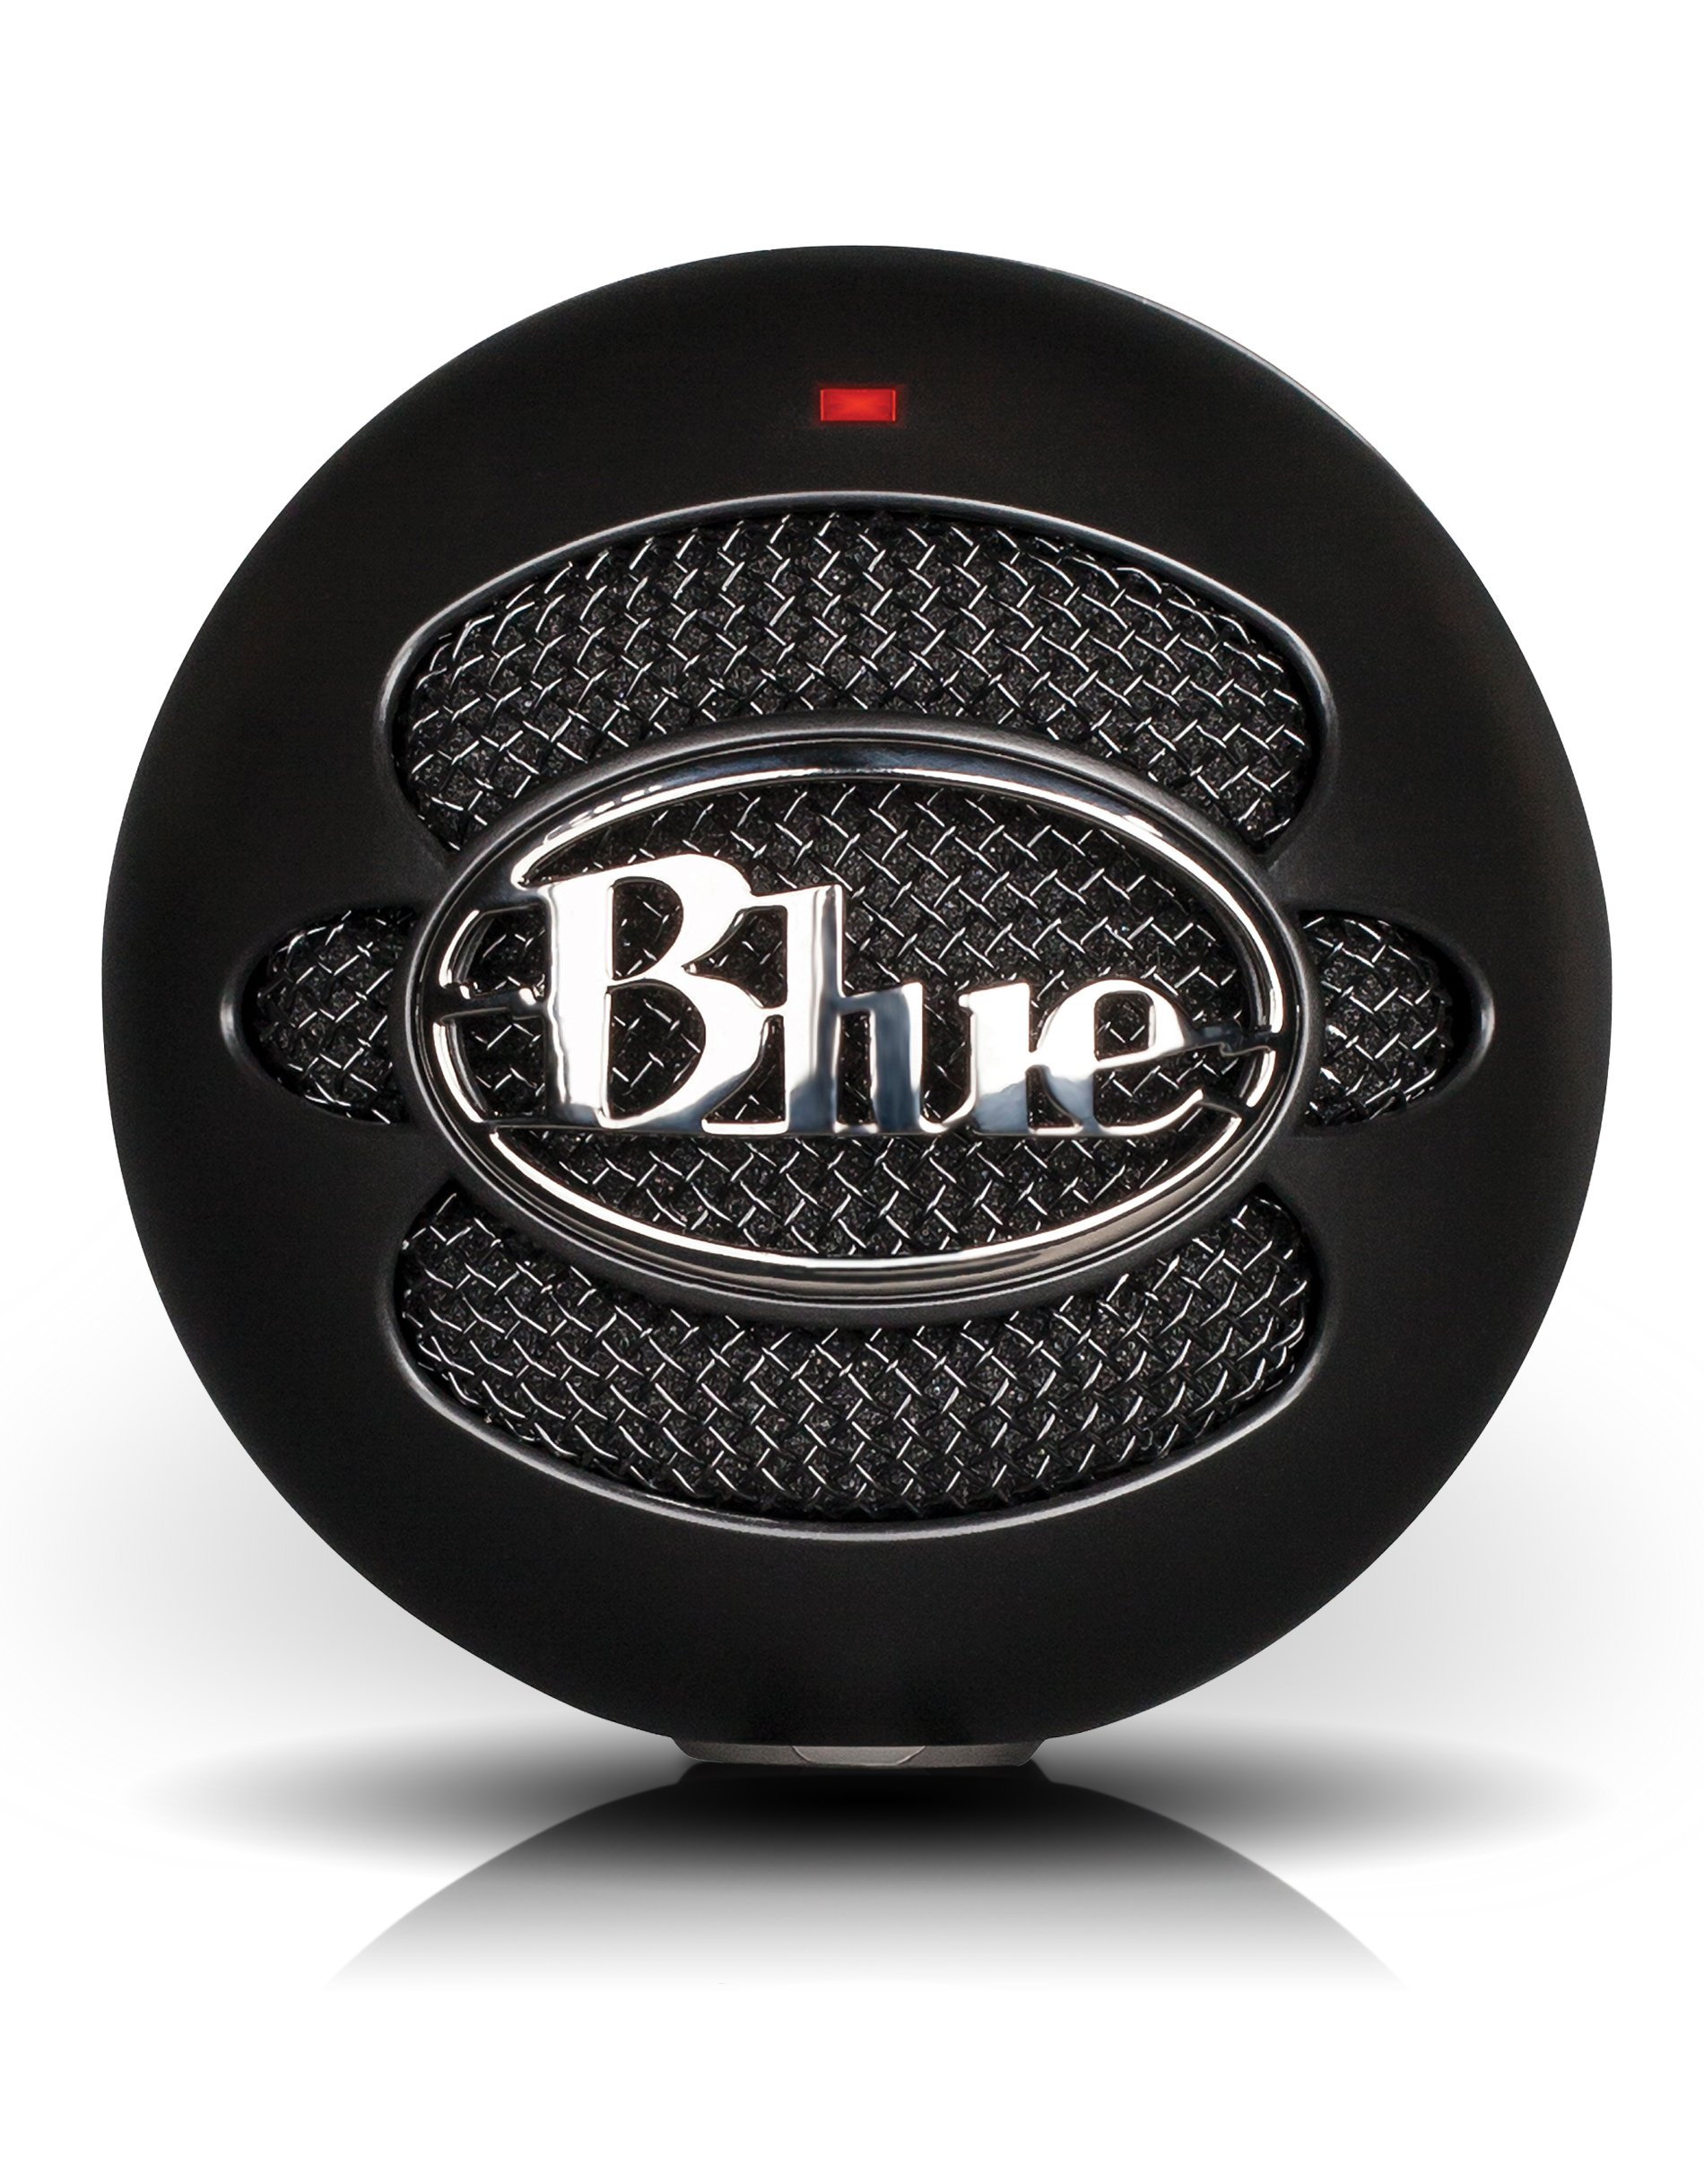 Blue Snowball iCE Condenser Microphone Blk (Certified Refurbished) by Blue Microphones